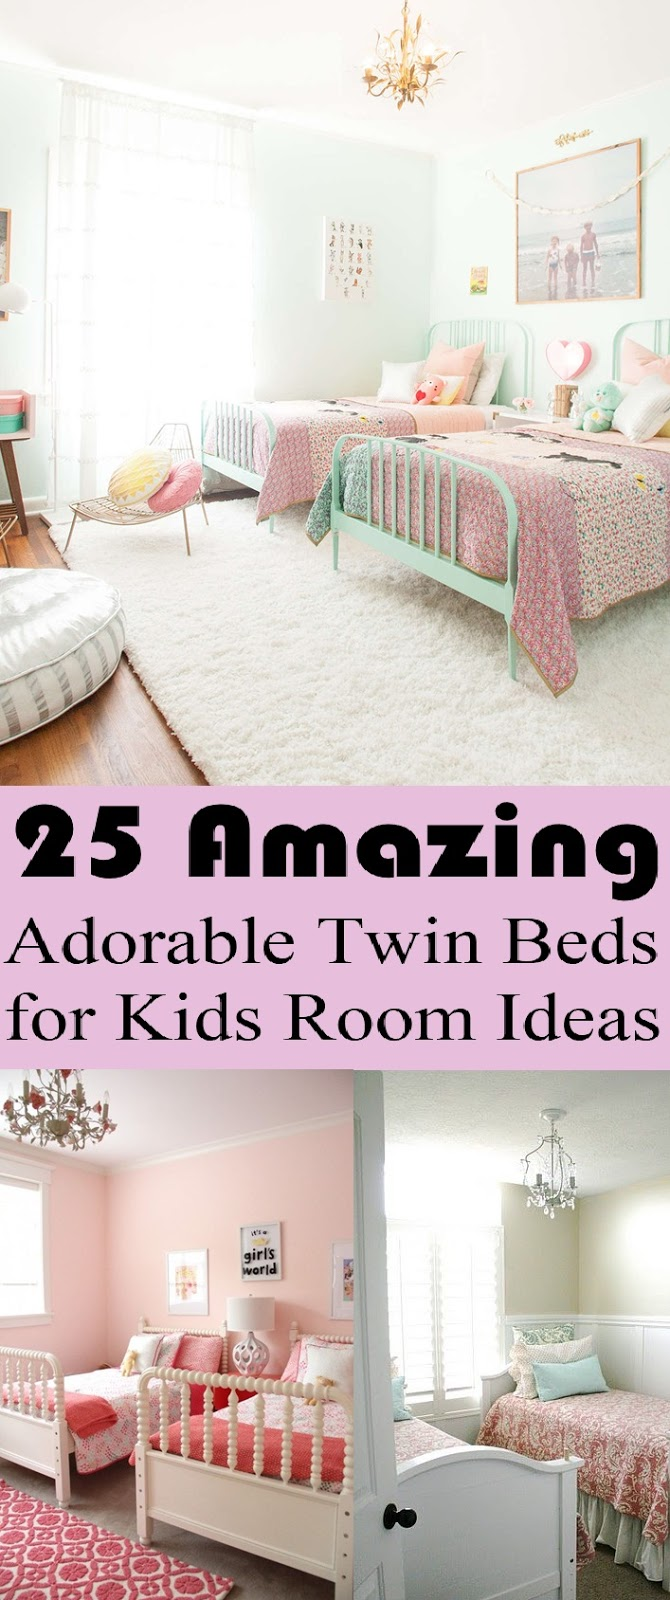 Amazing Adorable Twin Beds for Kids Room Ideas